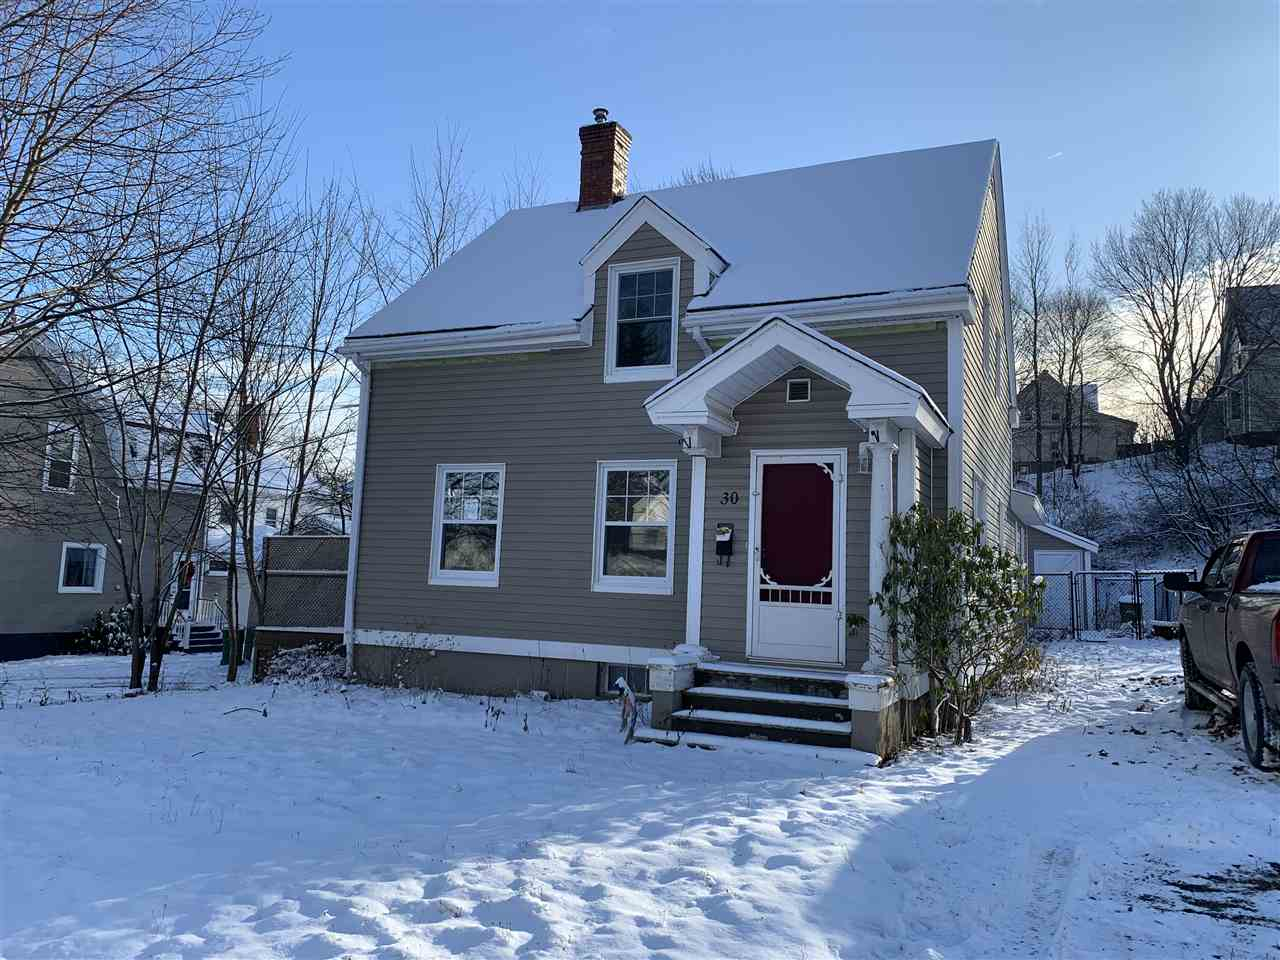 FEATURED LISTING: 30 Bell Street New Glasgow